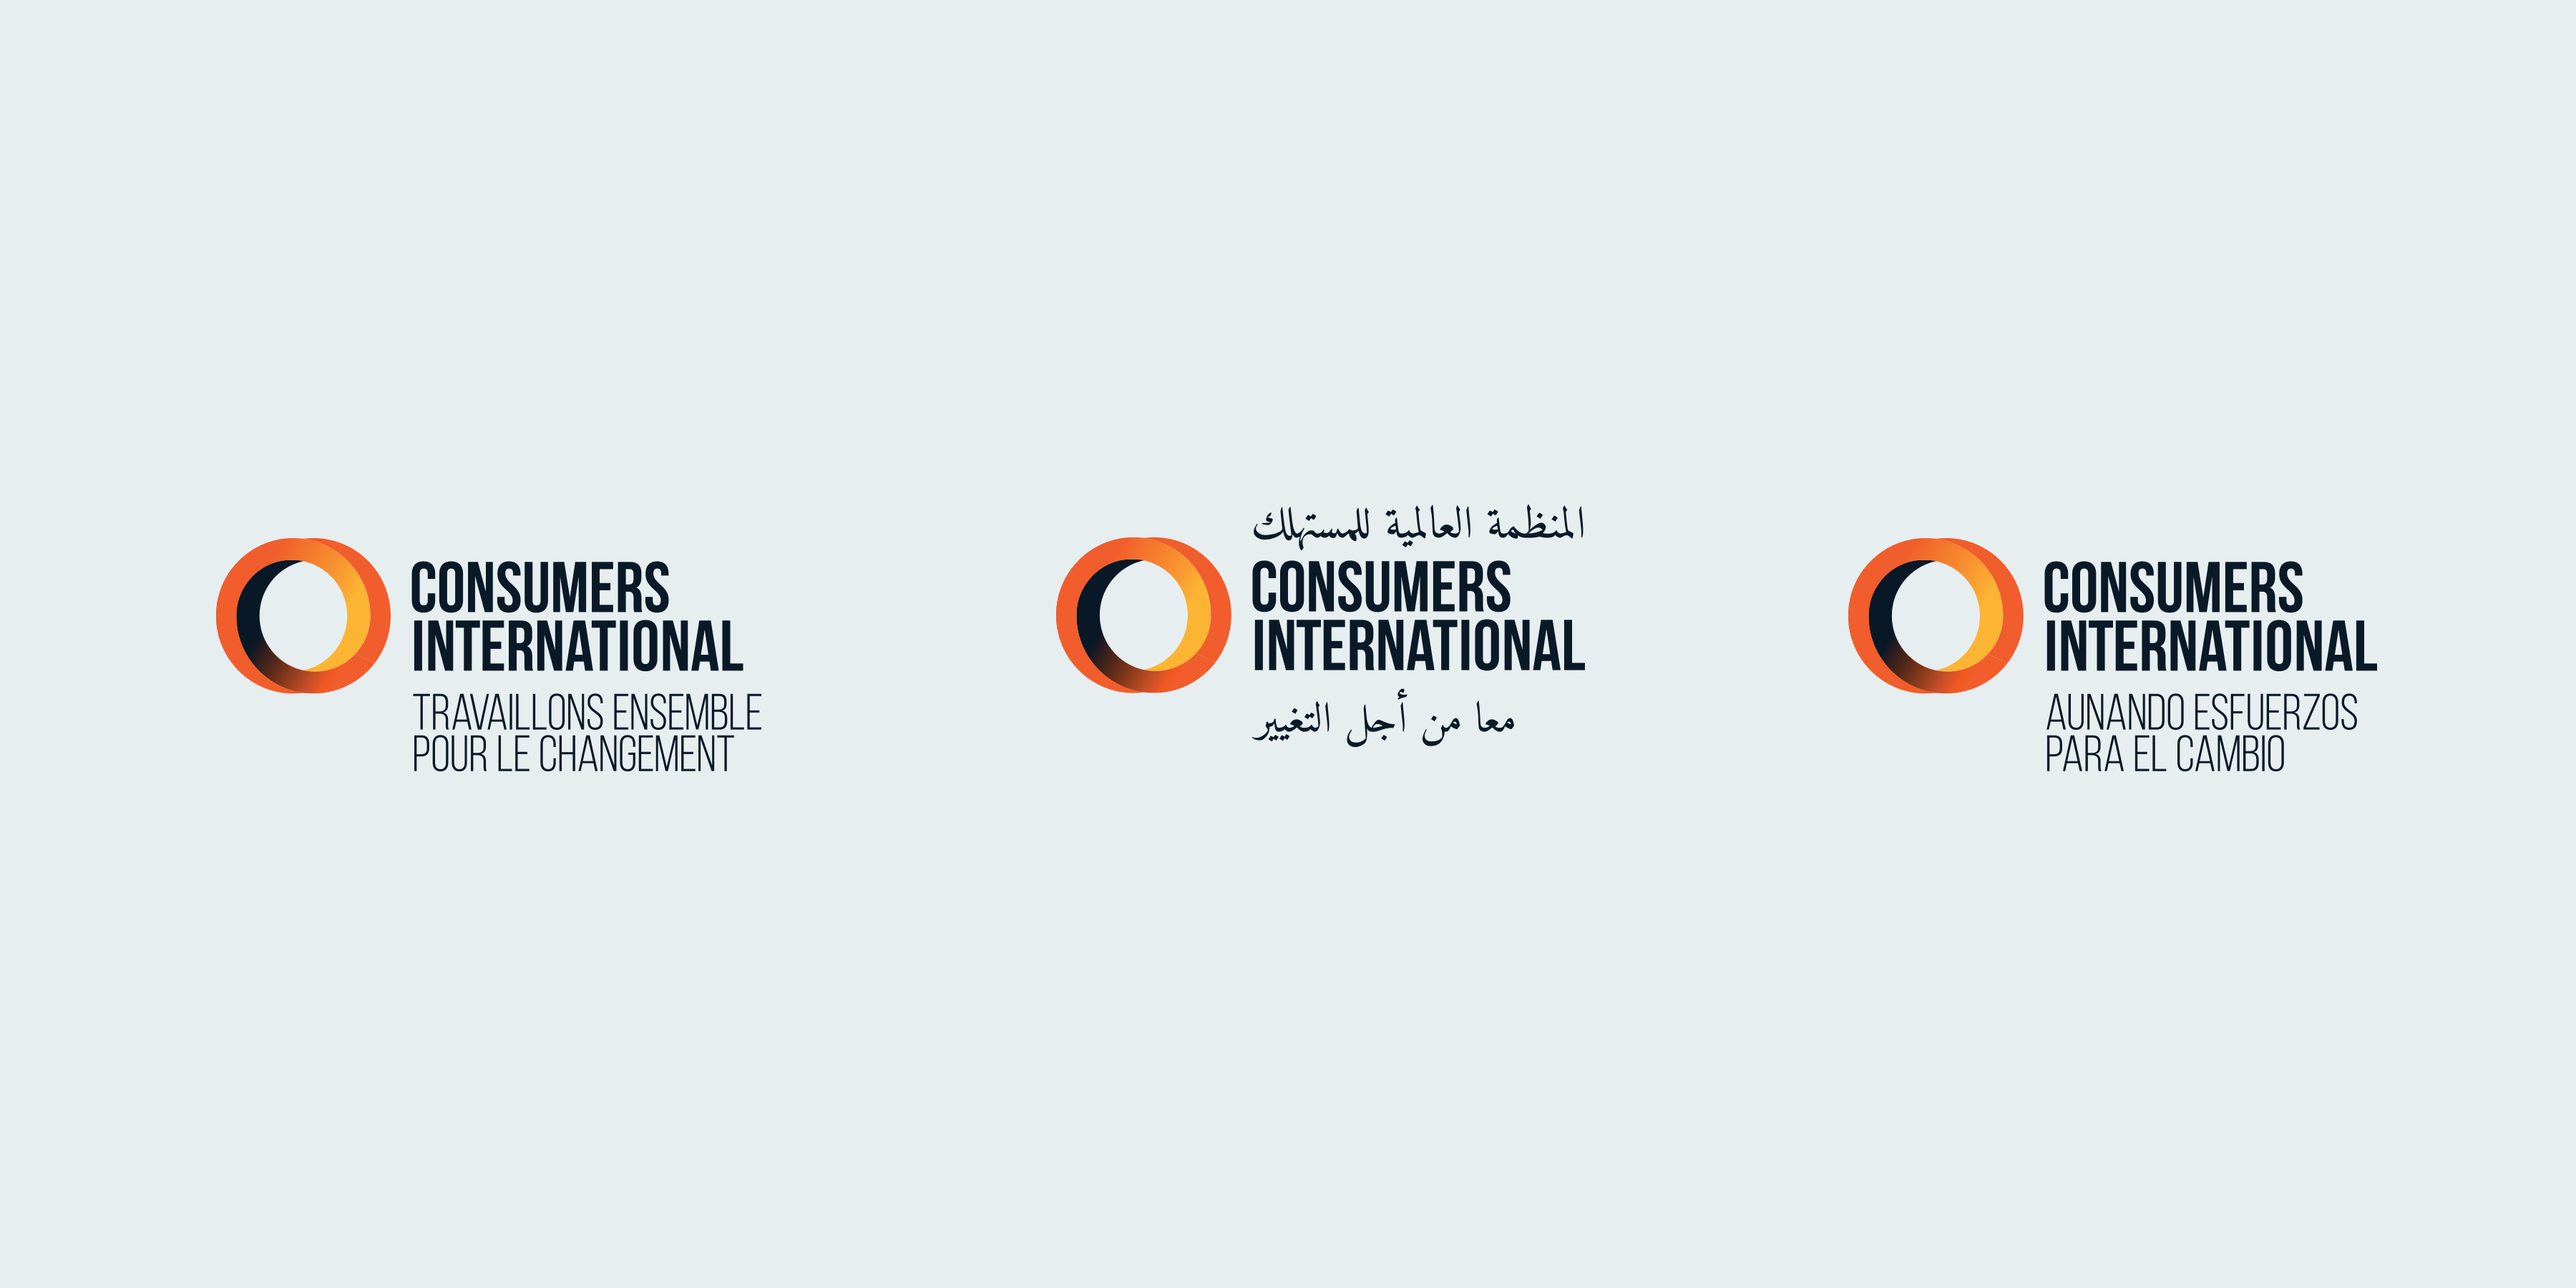 Consumers International logos